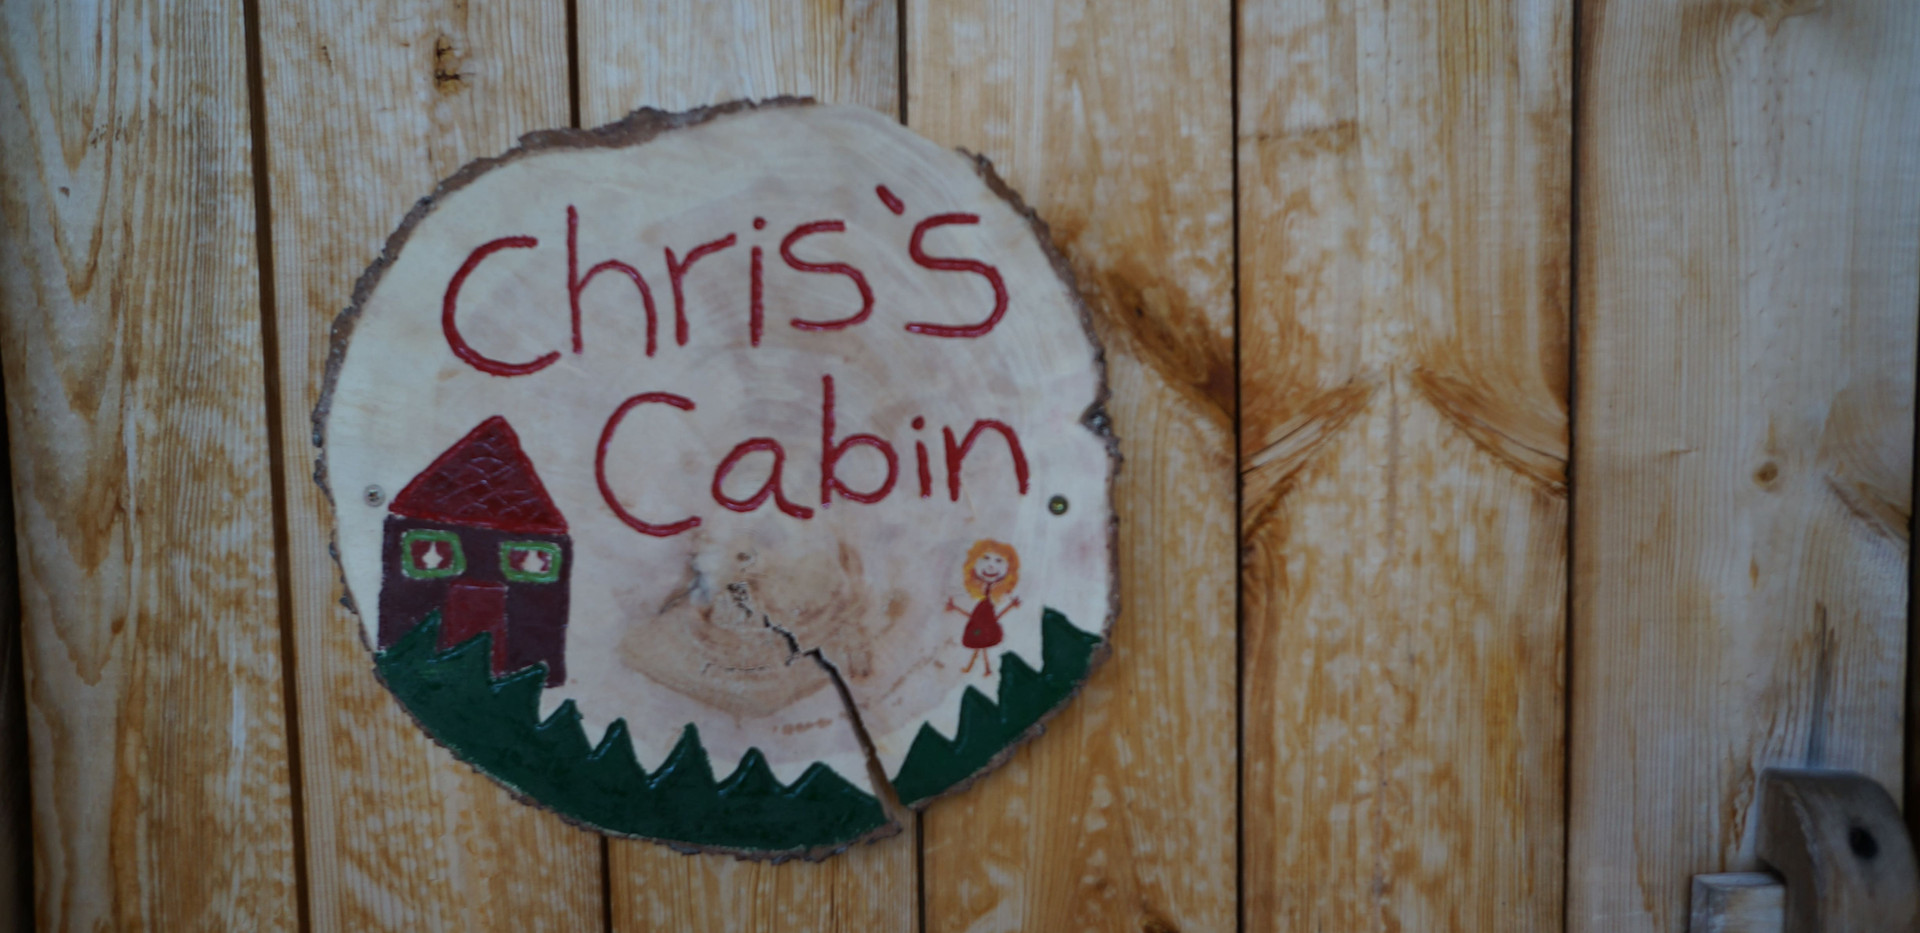 Chris's Cabin